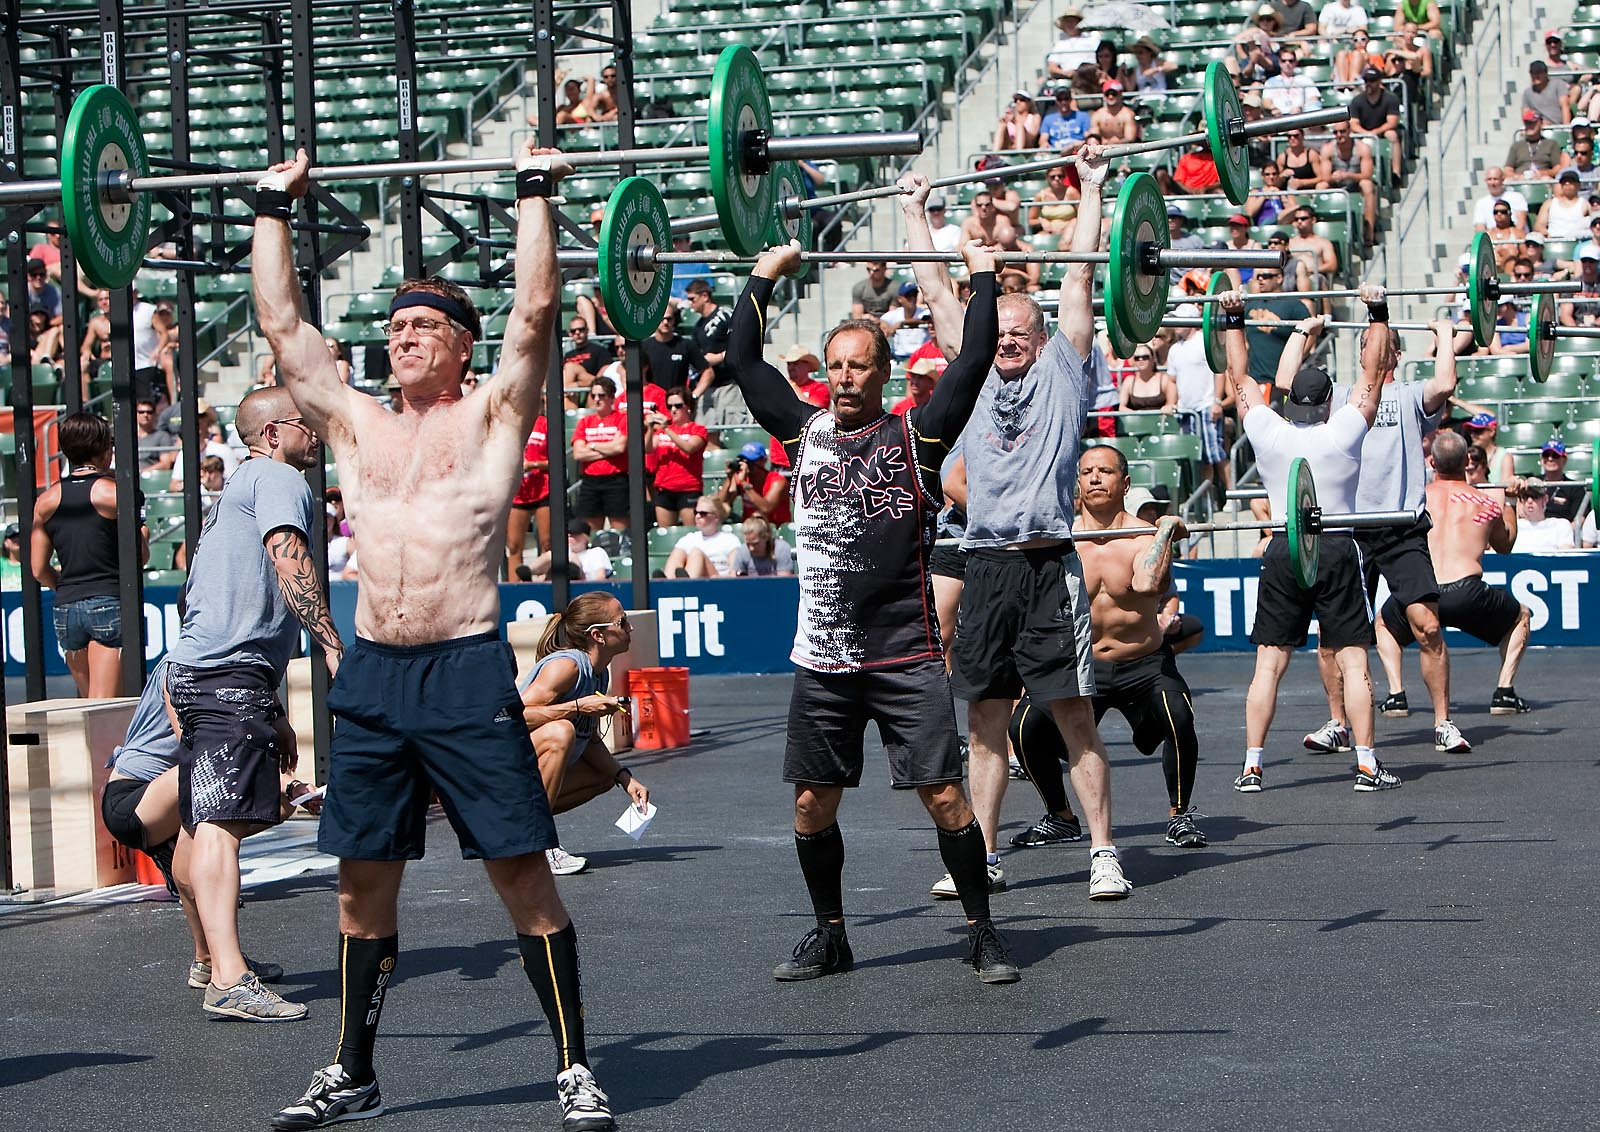 how to watch crossfit game